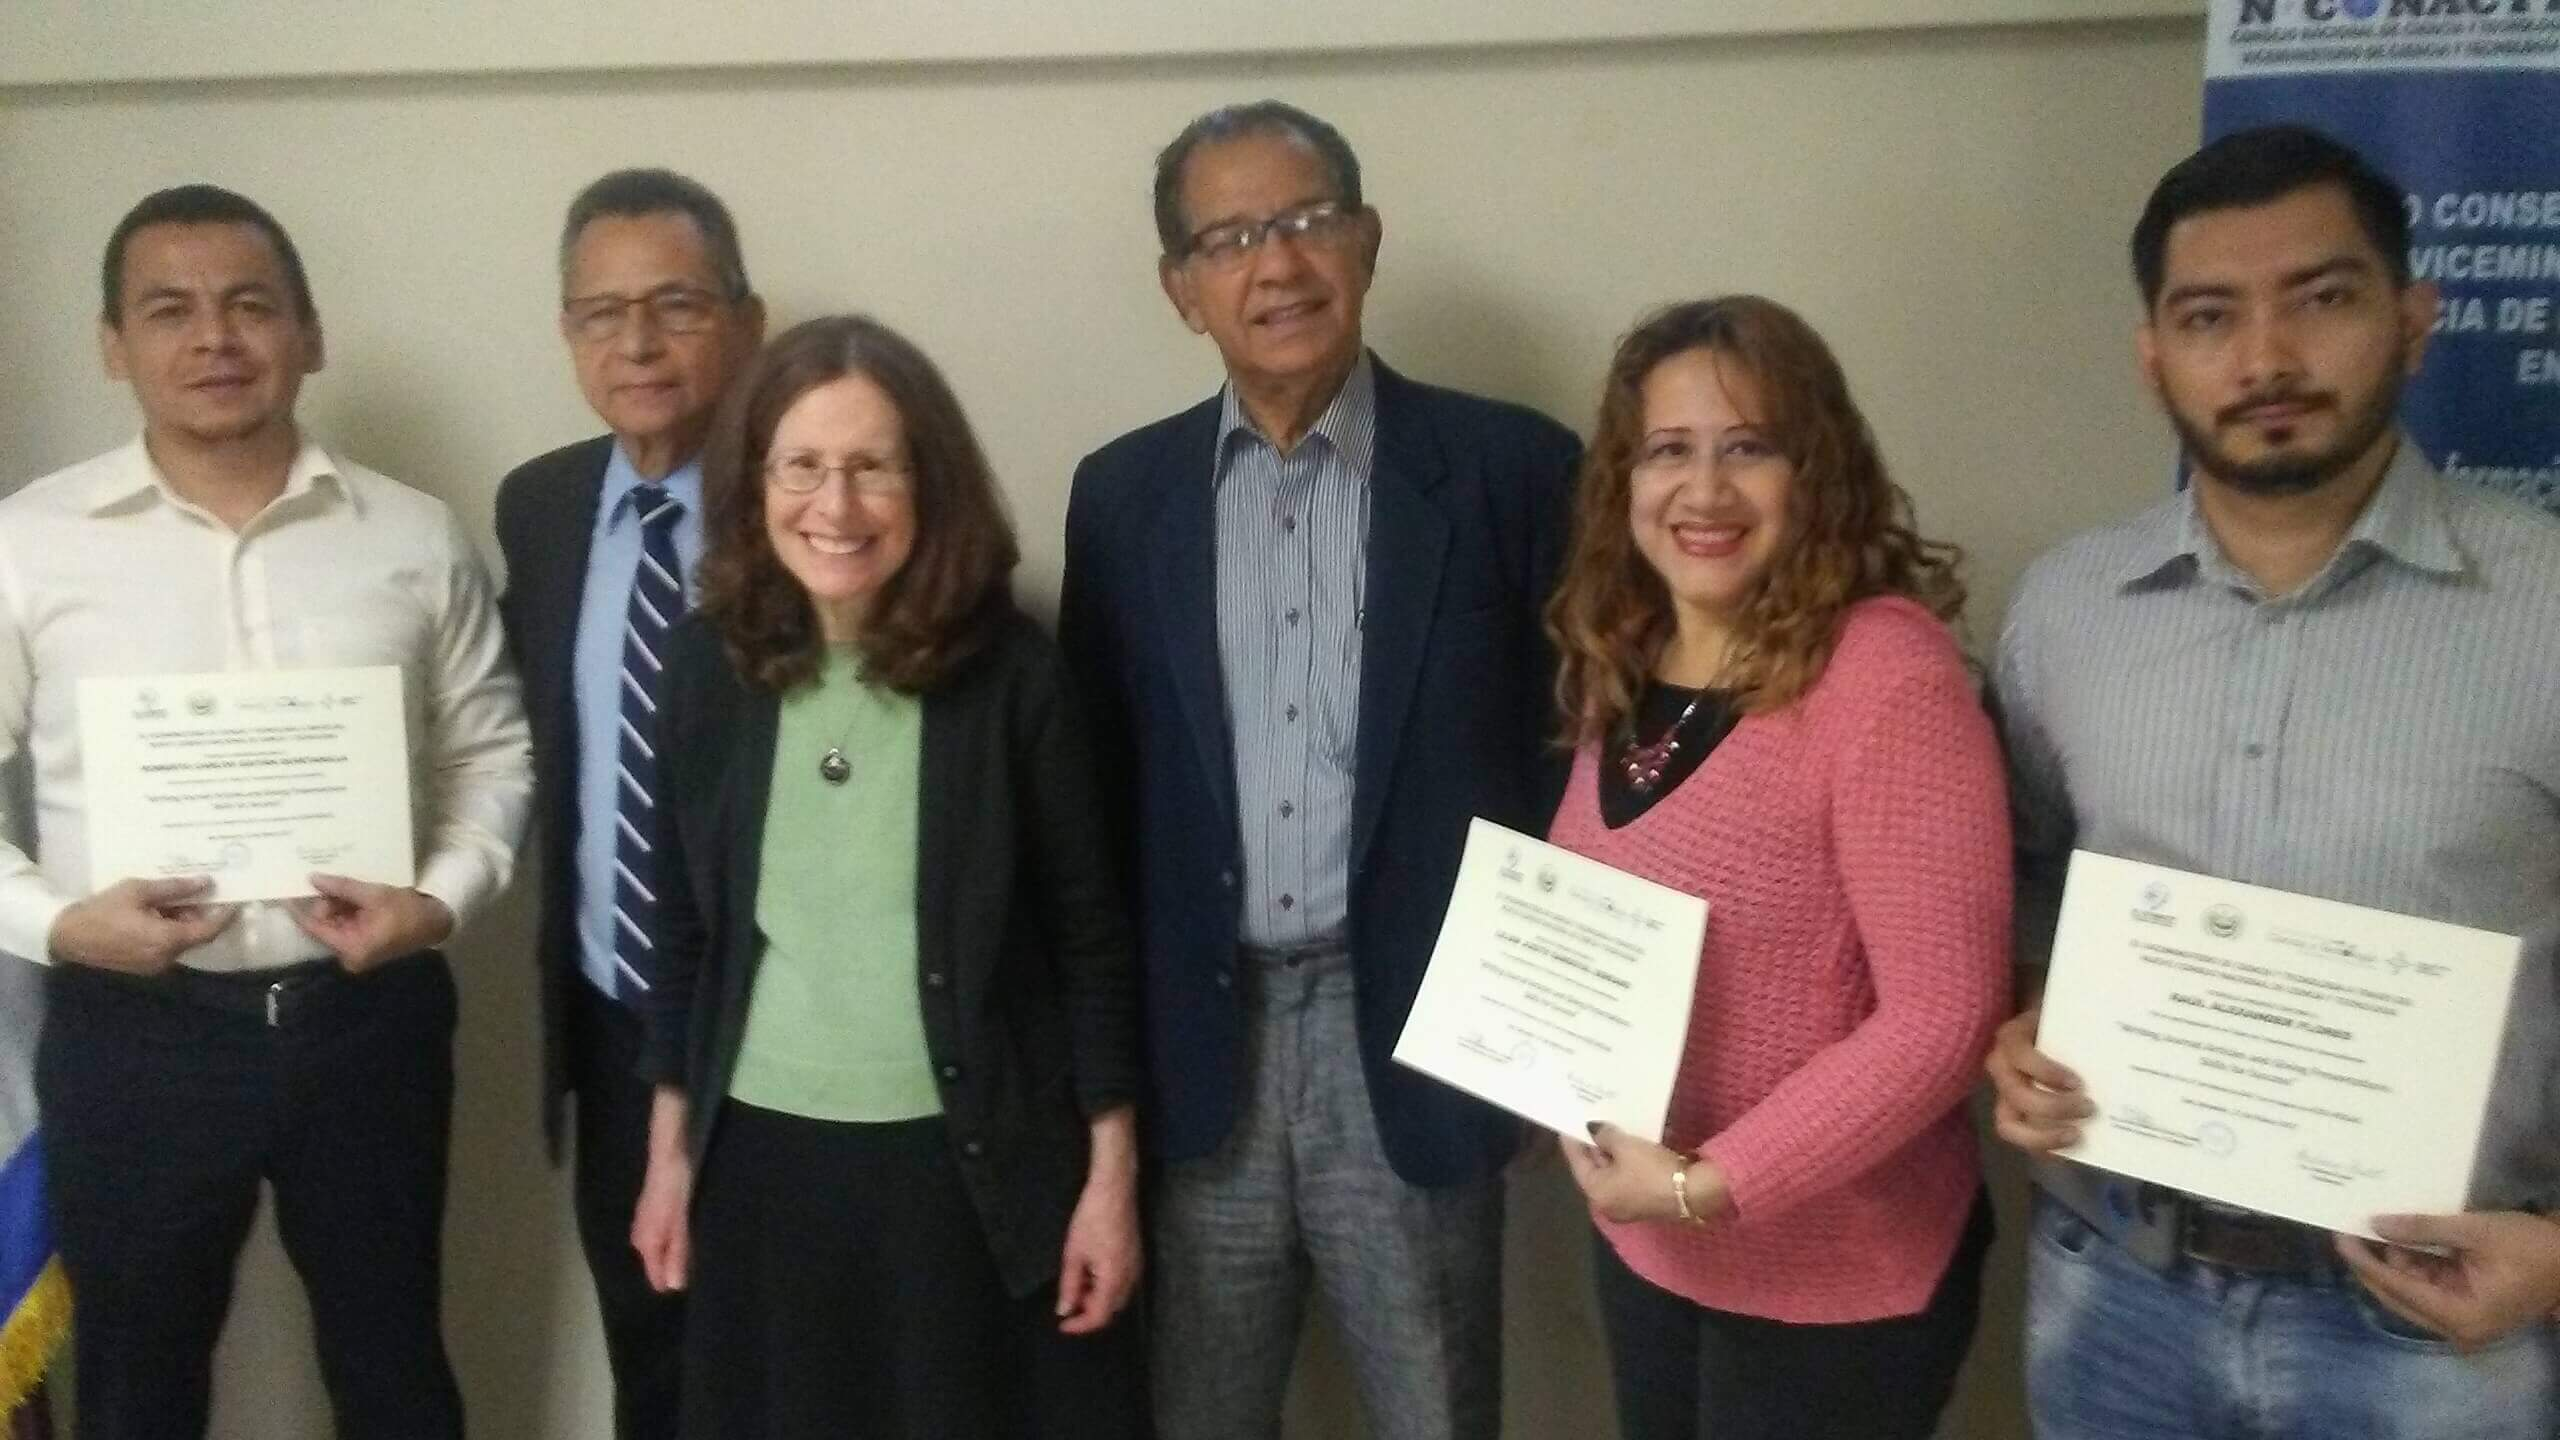 """DOCENTES INVESTIGADORES PARTICIPAN EN TALLER """"WRITING JOURNAL ARTICLES AND GIVING PRESENTATIONS: SKILLS FOR SUCCESS"""""""